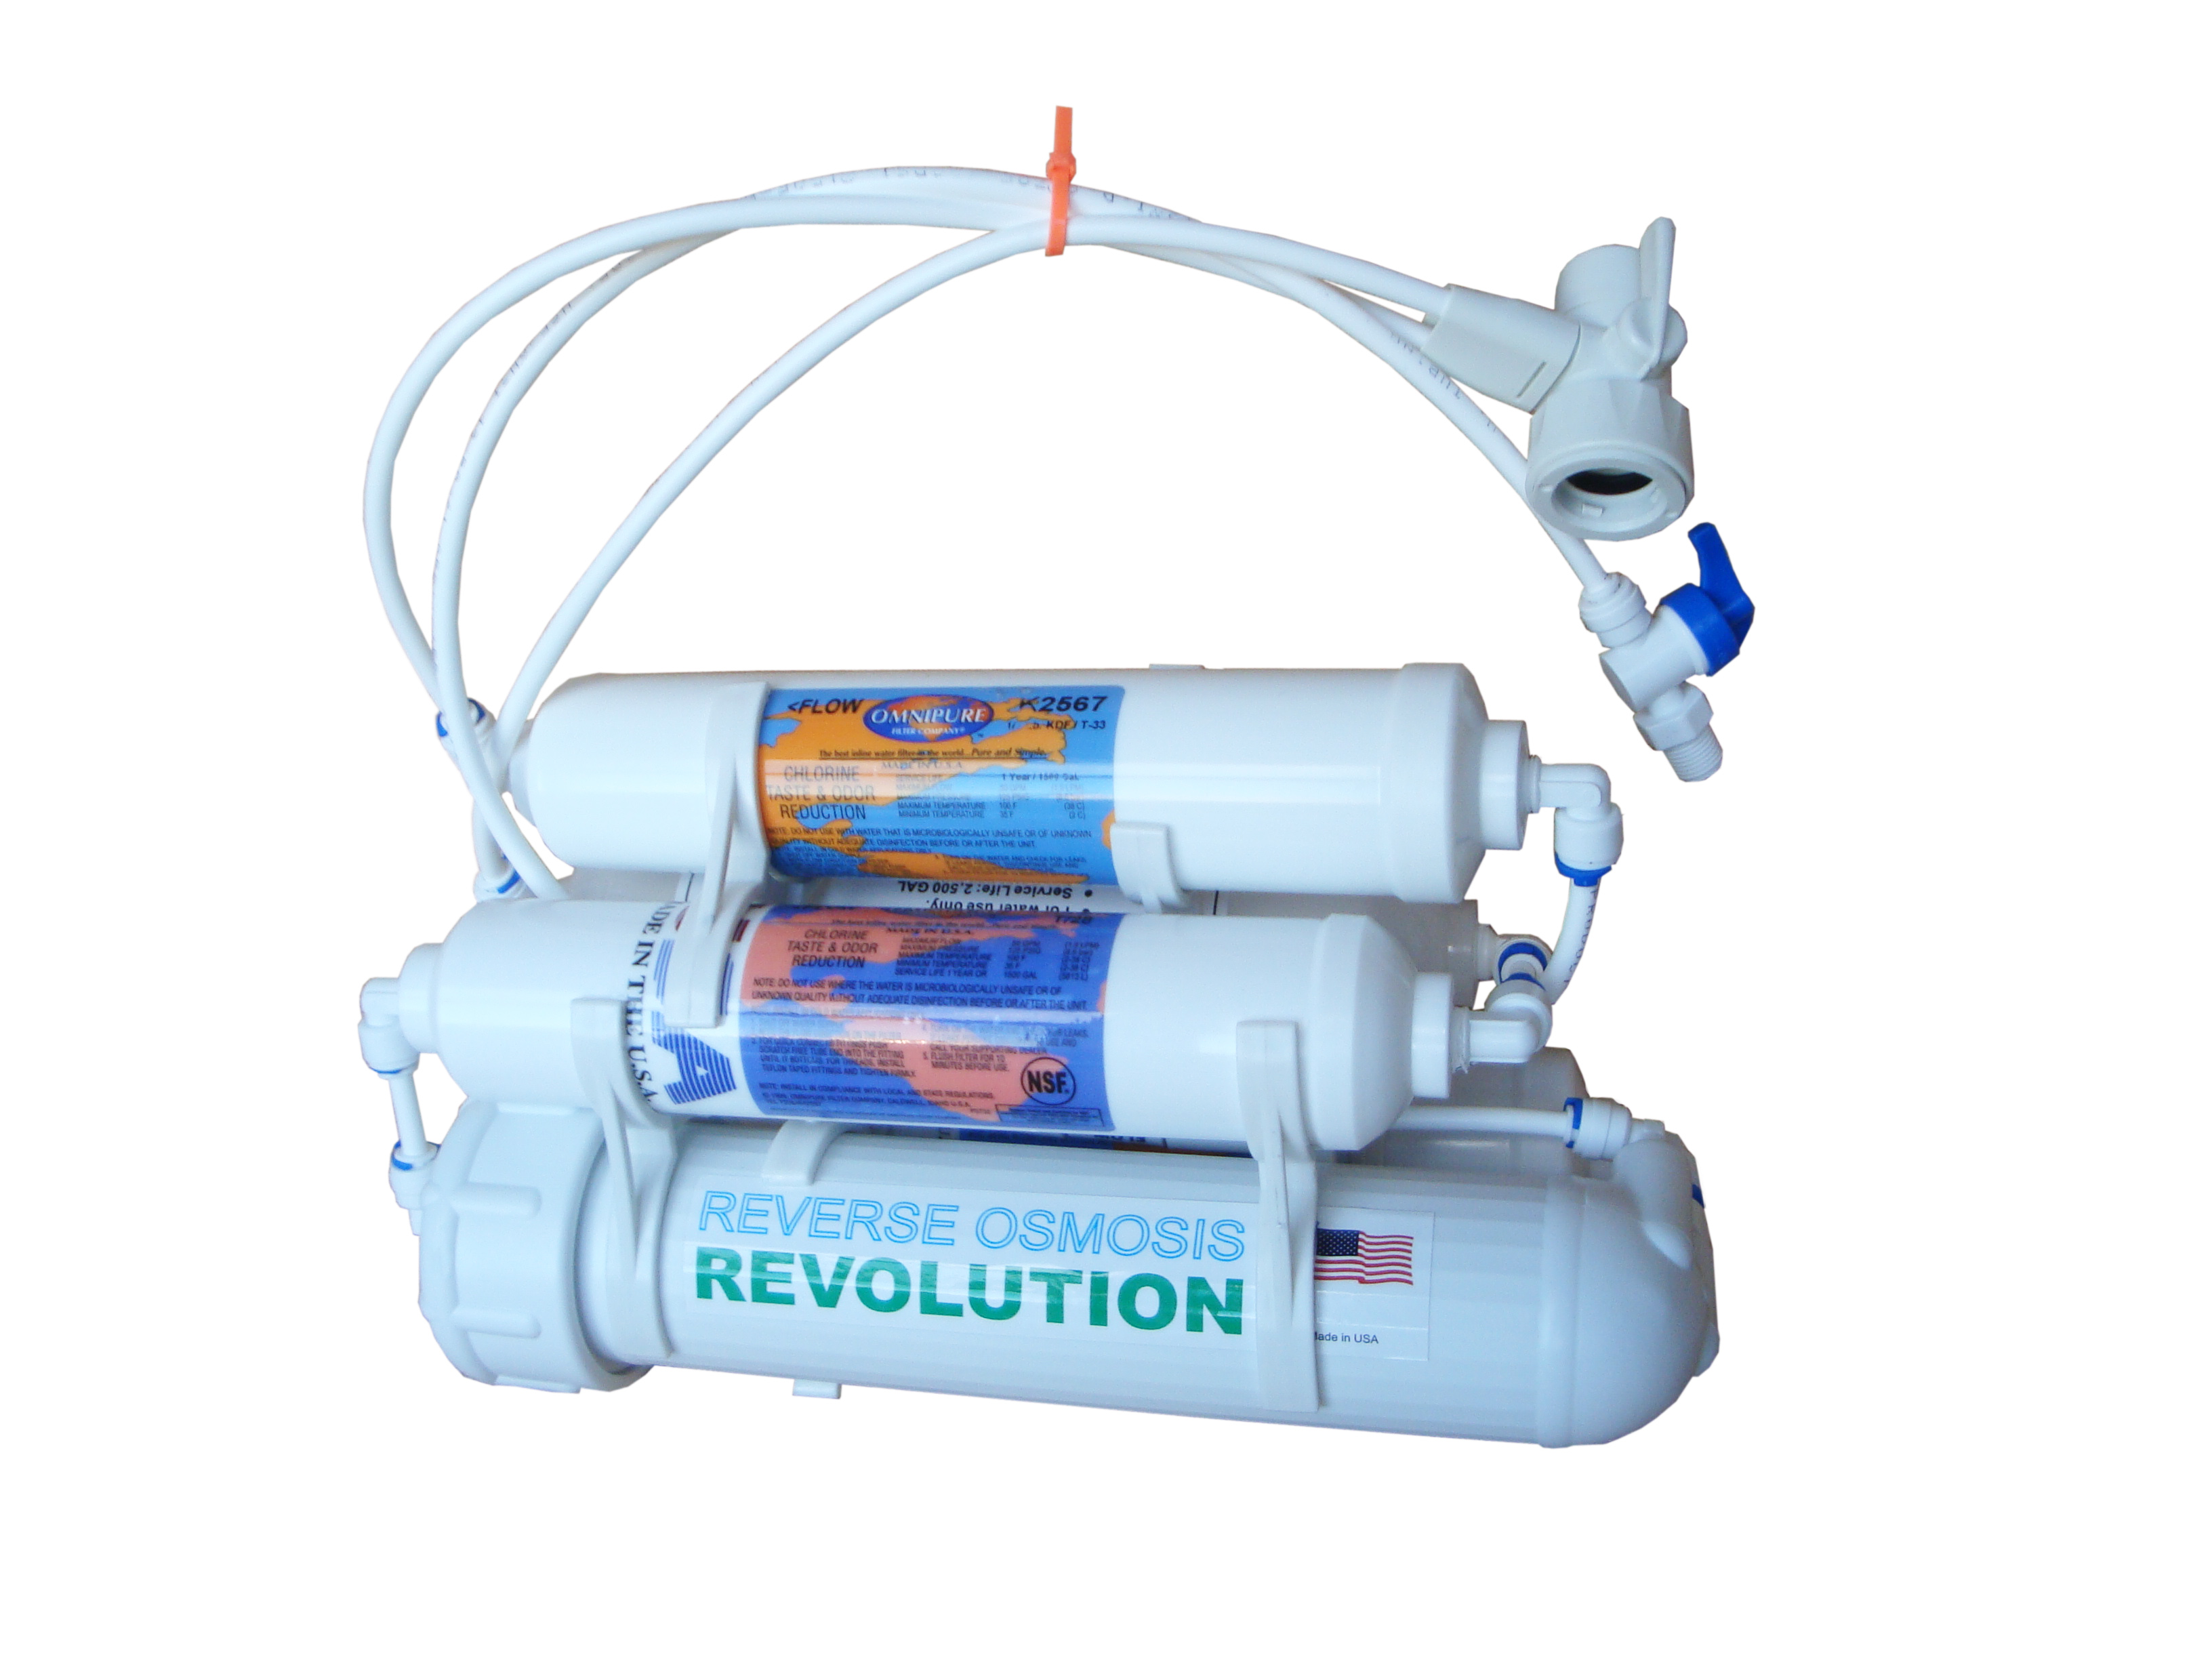 Antibacterial Universal 5 Stage Reverse Osmosis Revolution